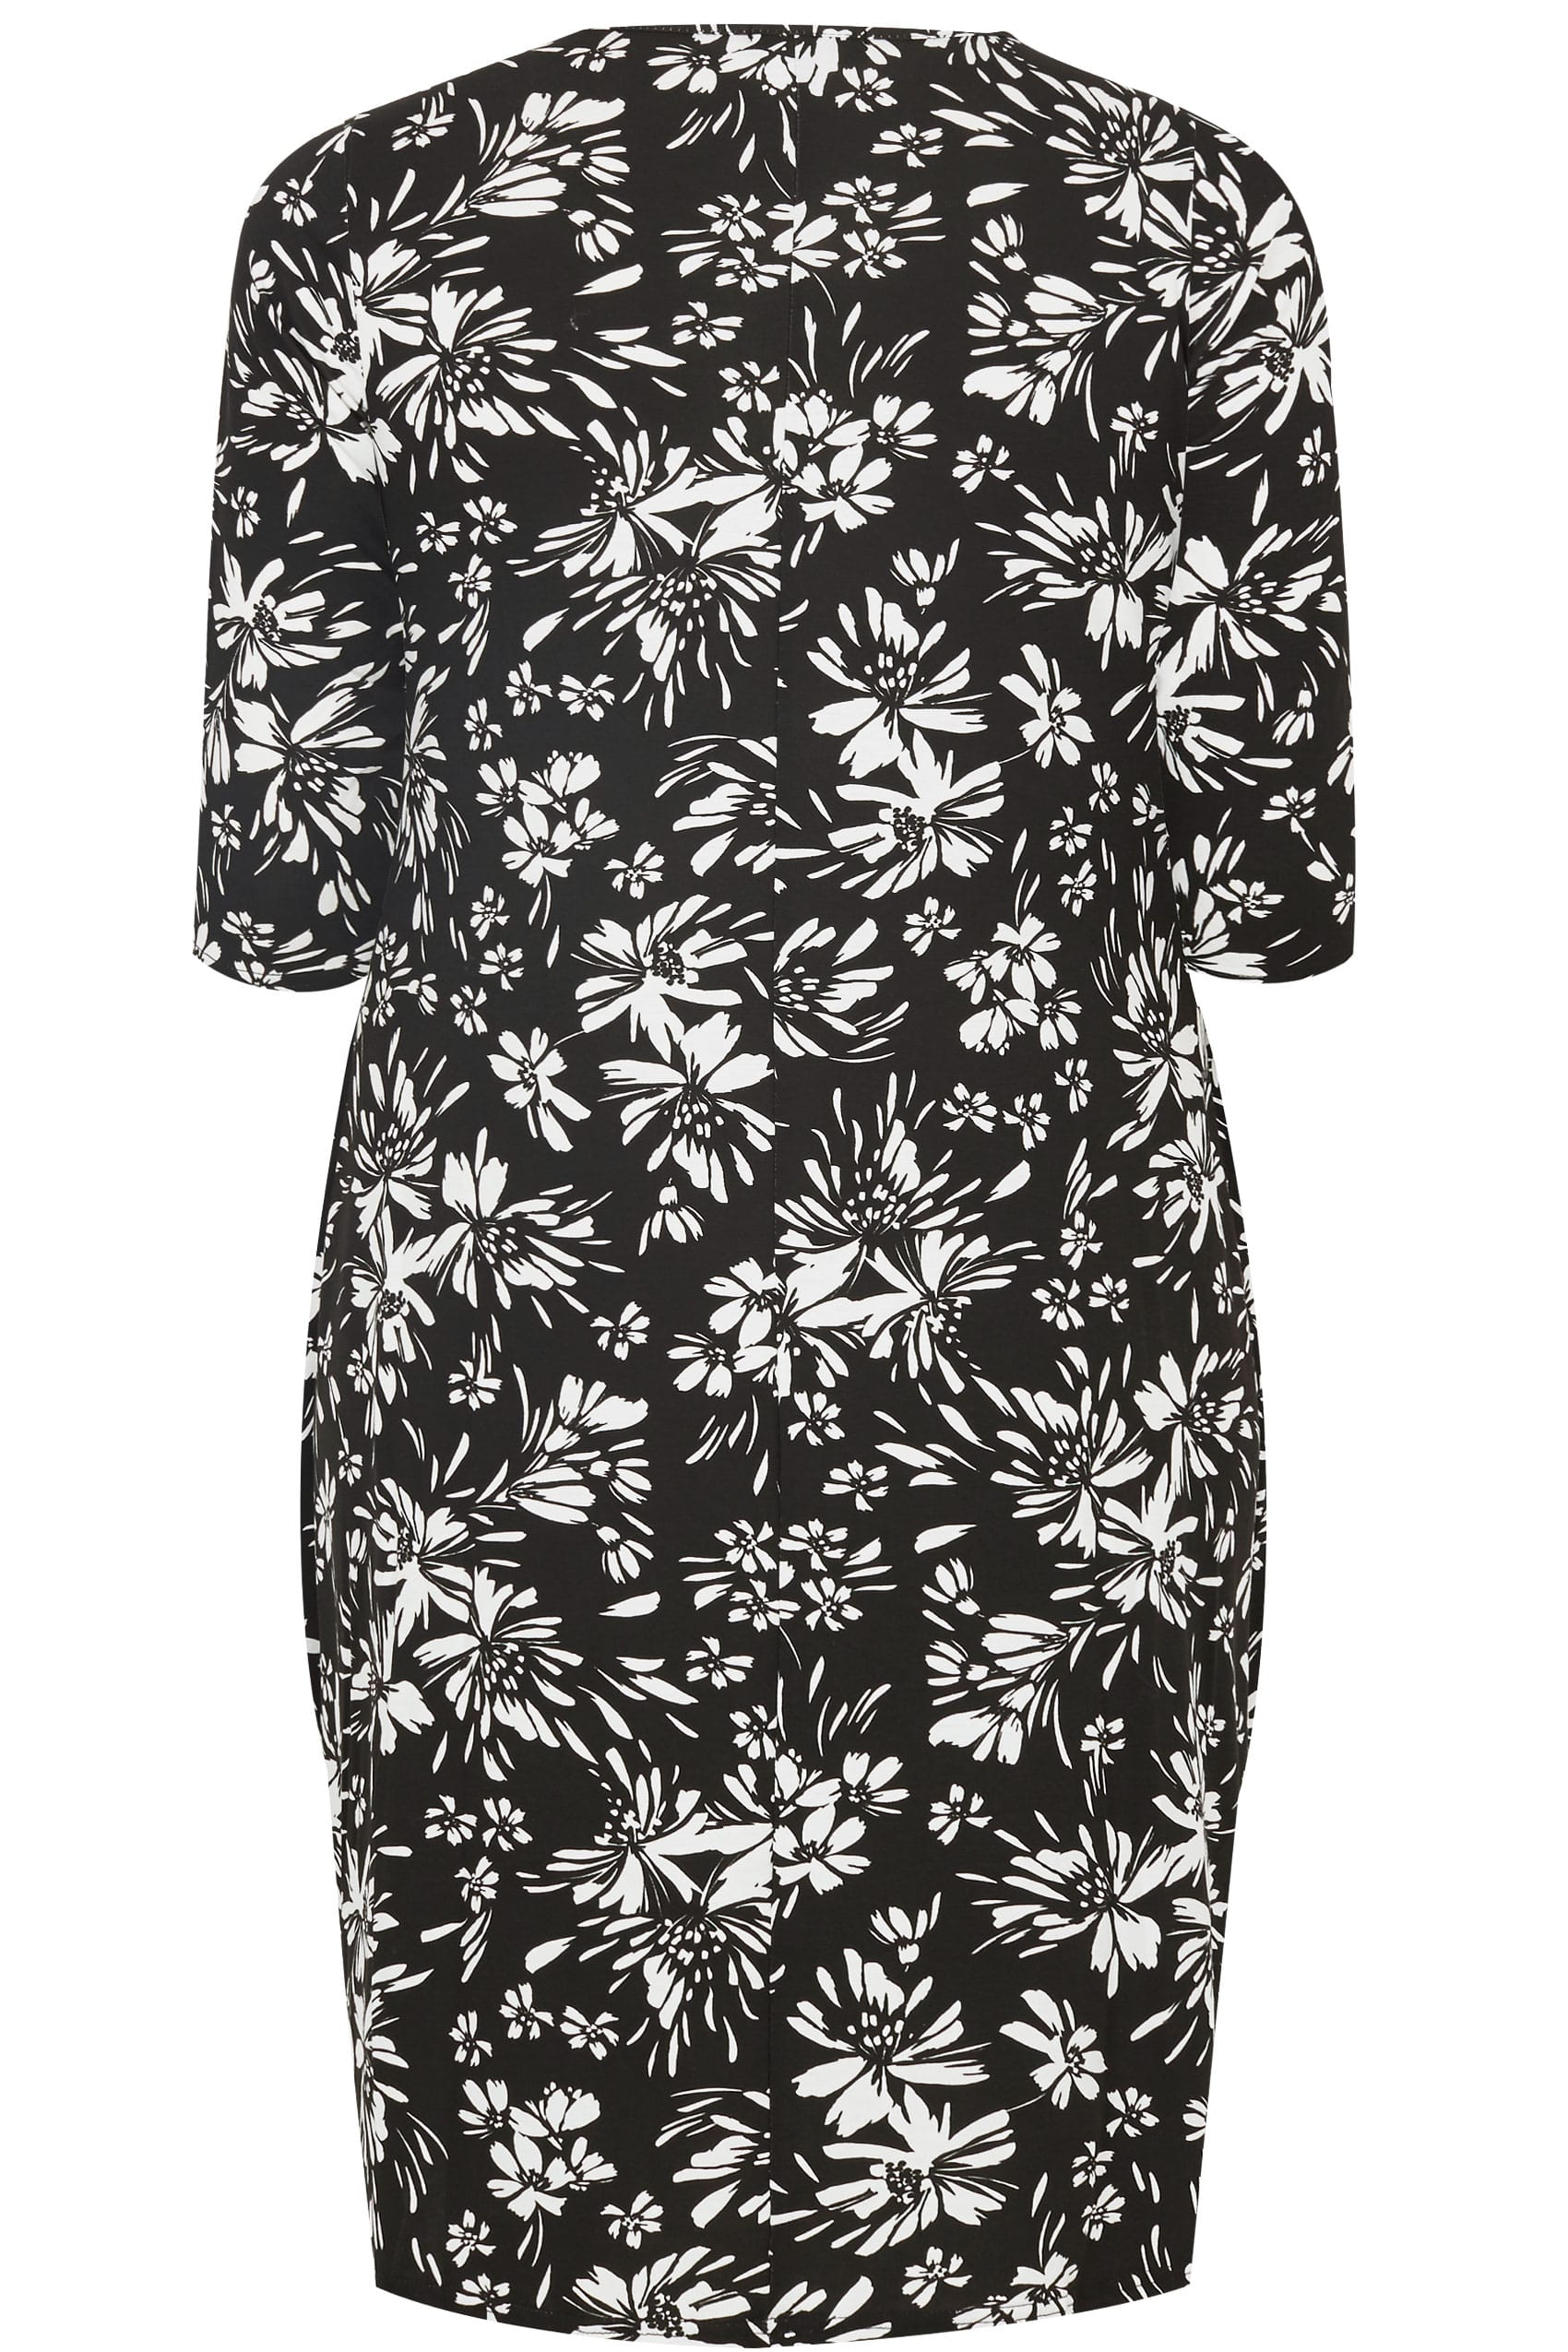 Black & White Floral Drape Pocket Jersey Dress With 3/4 ...